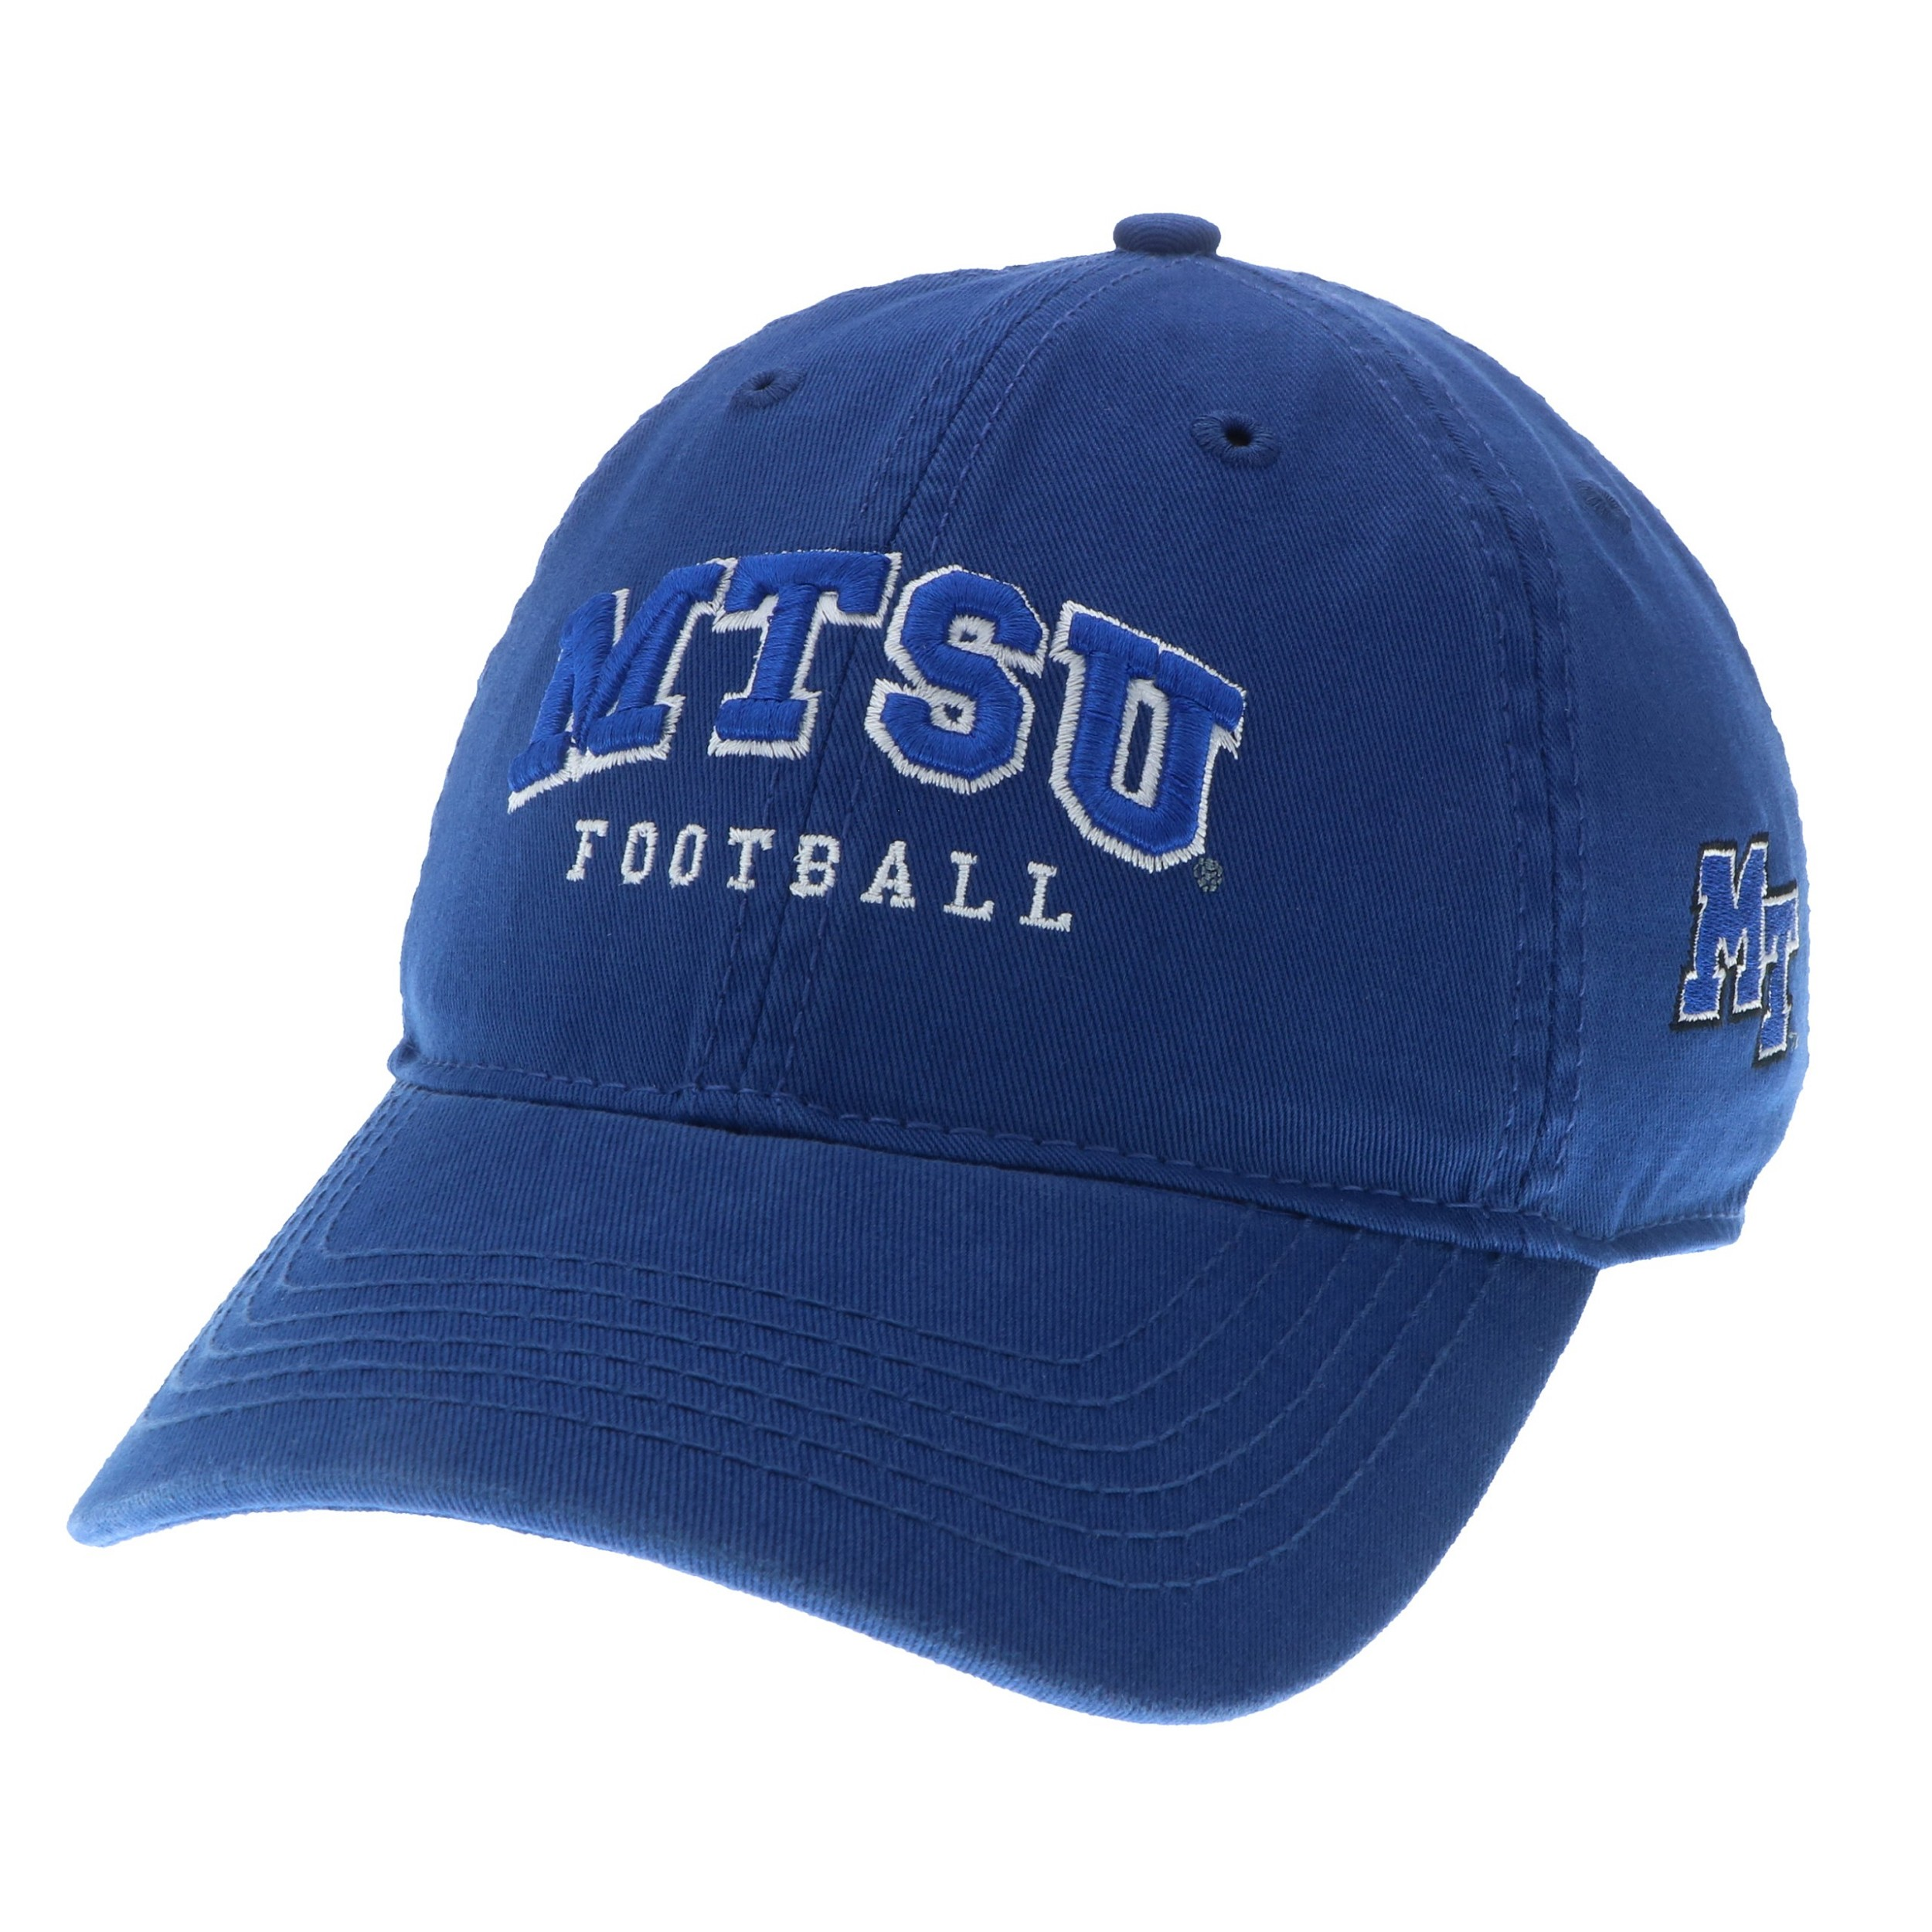 MTSU Football Arch Relaxed Twill Hat